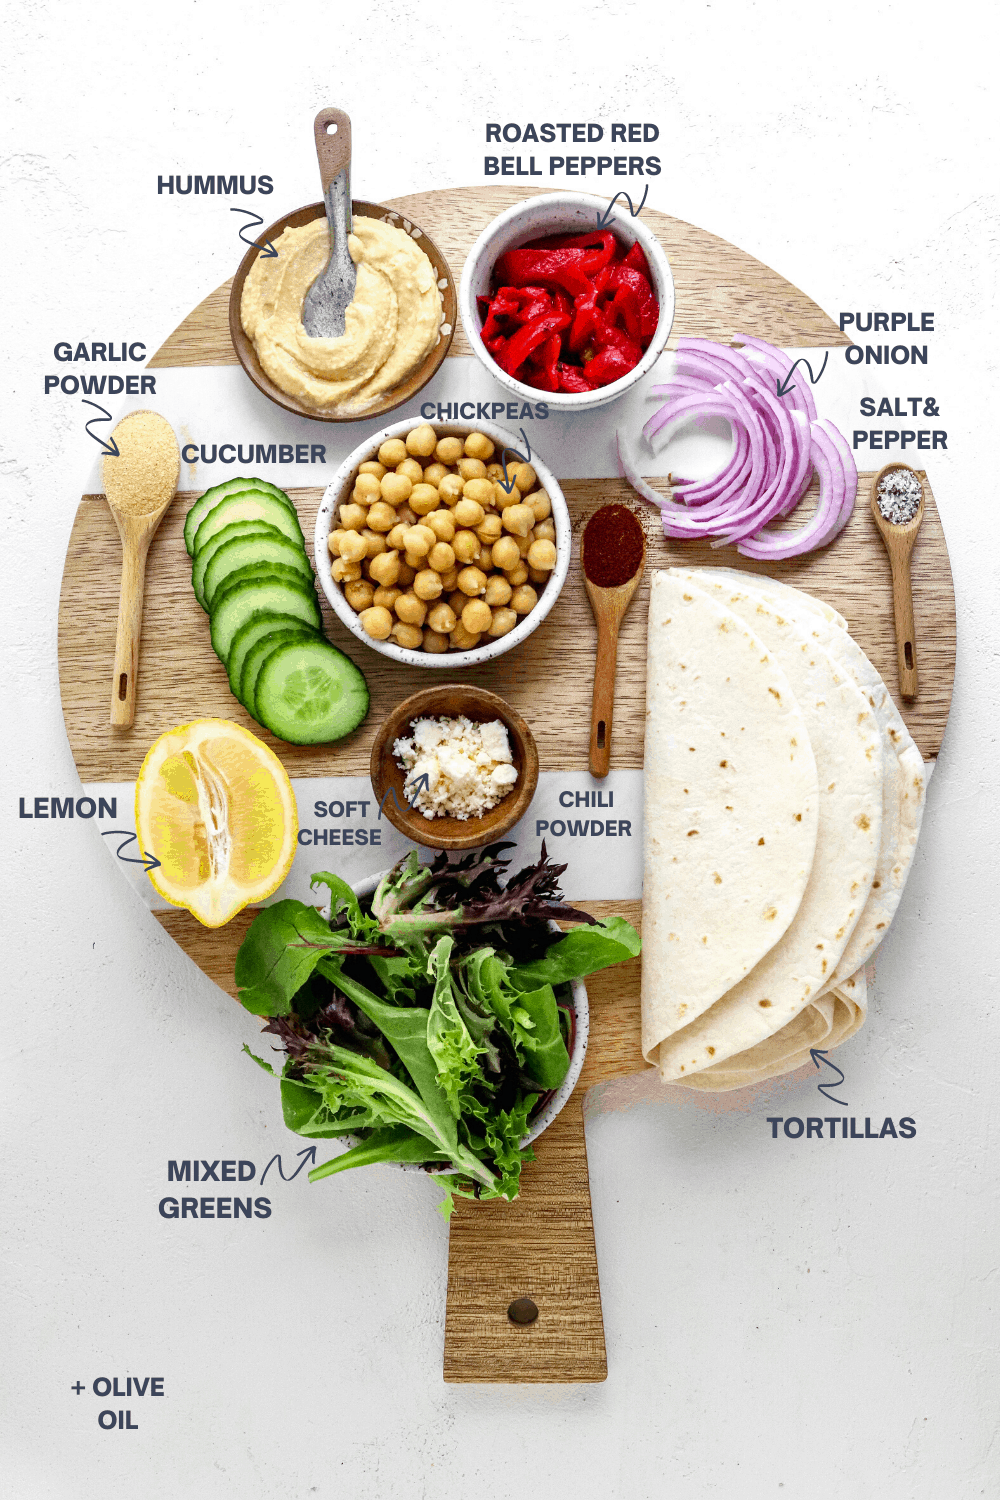 A round wooden cutting board with a bowl of hummus, bowl of roasted red peppers and a bowl of chickpeas next to it with a pile of flour tortillas, sliced cucumber, feta cheese and mixed greens in front of it with labels of each ingredient.